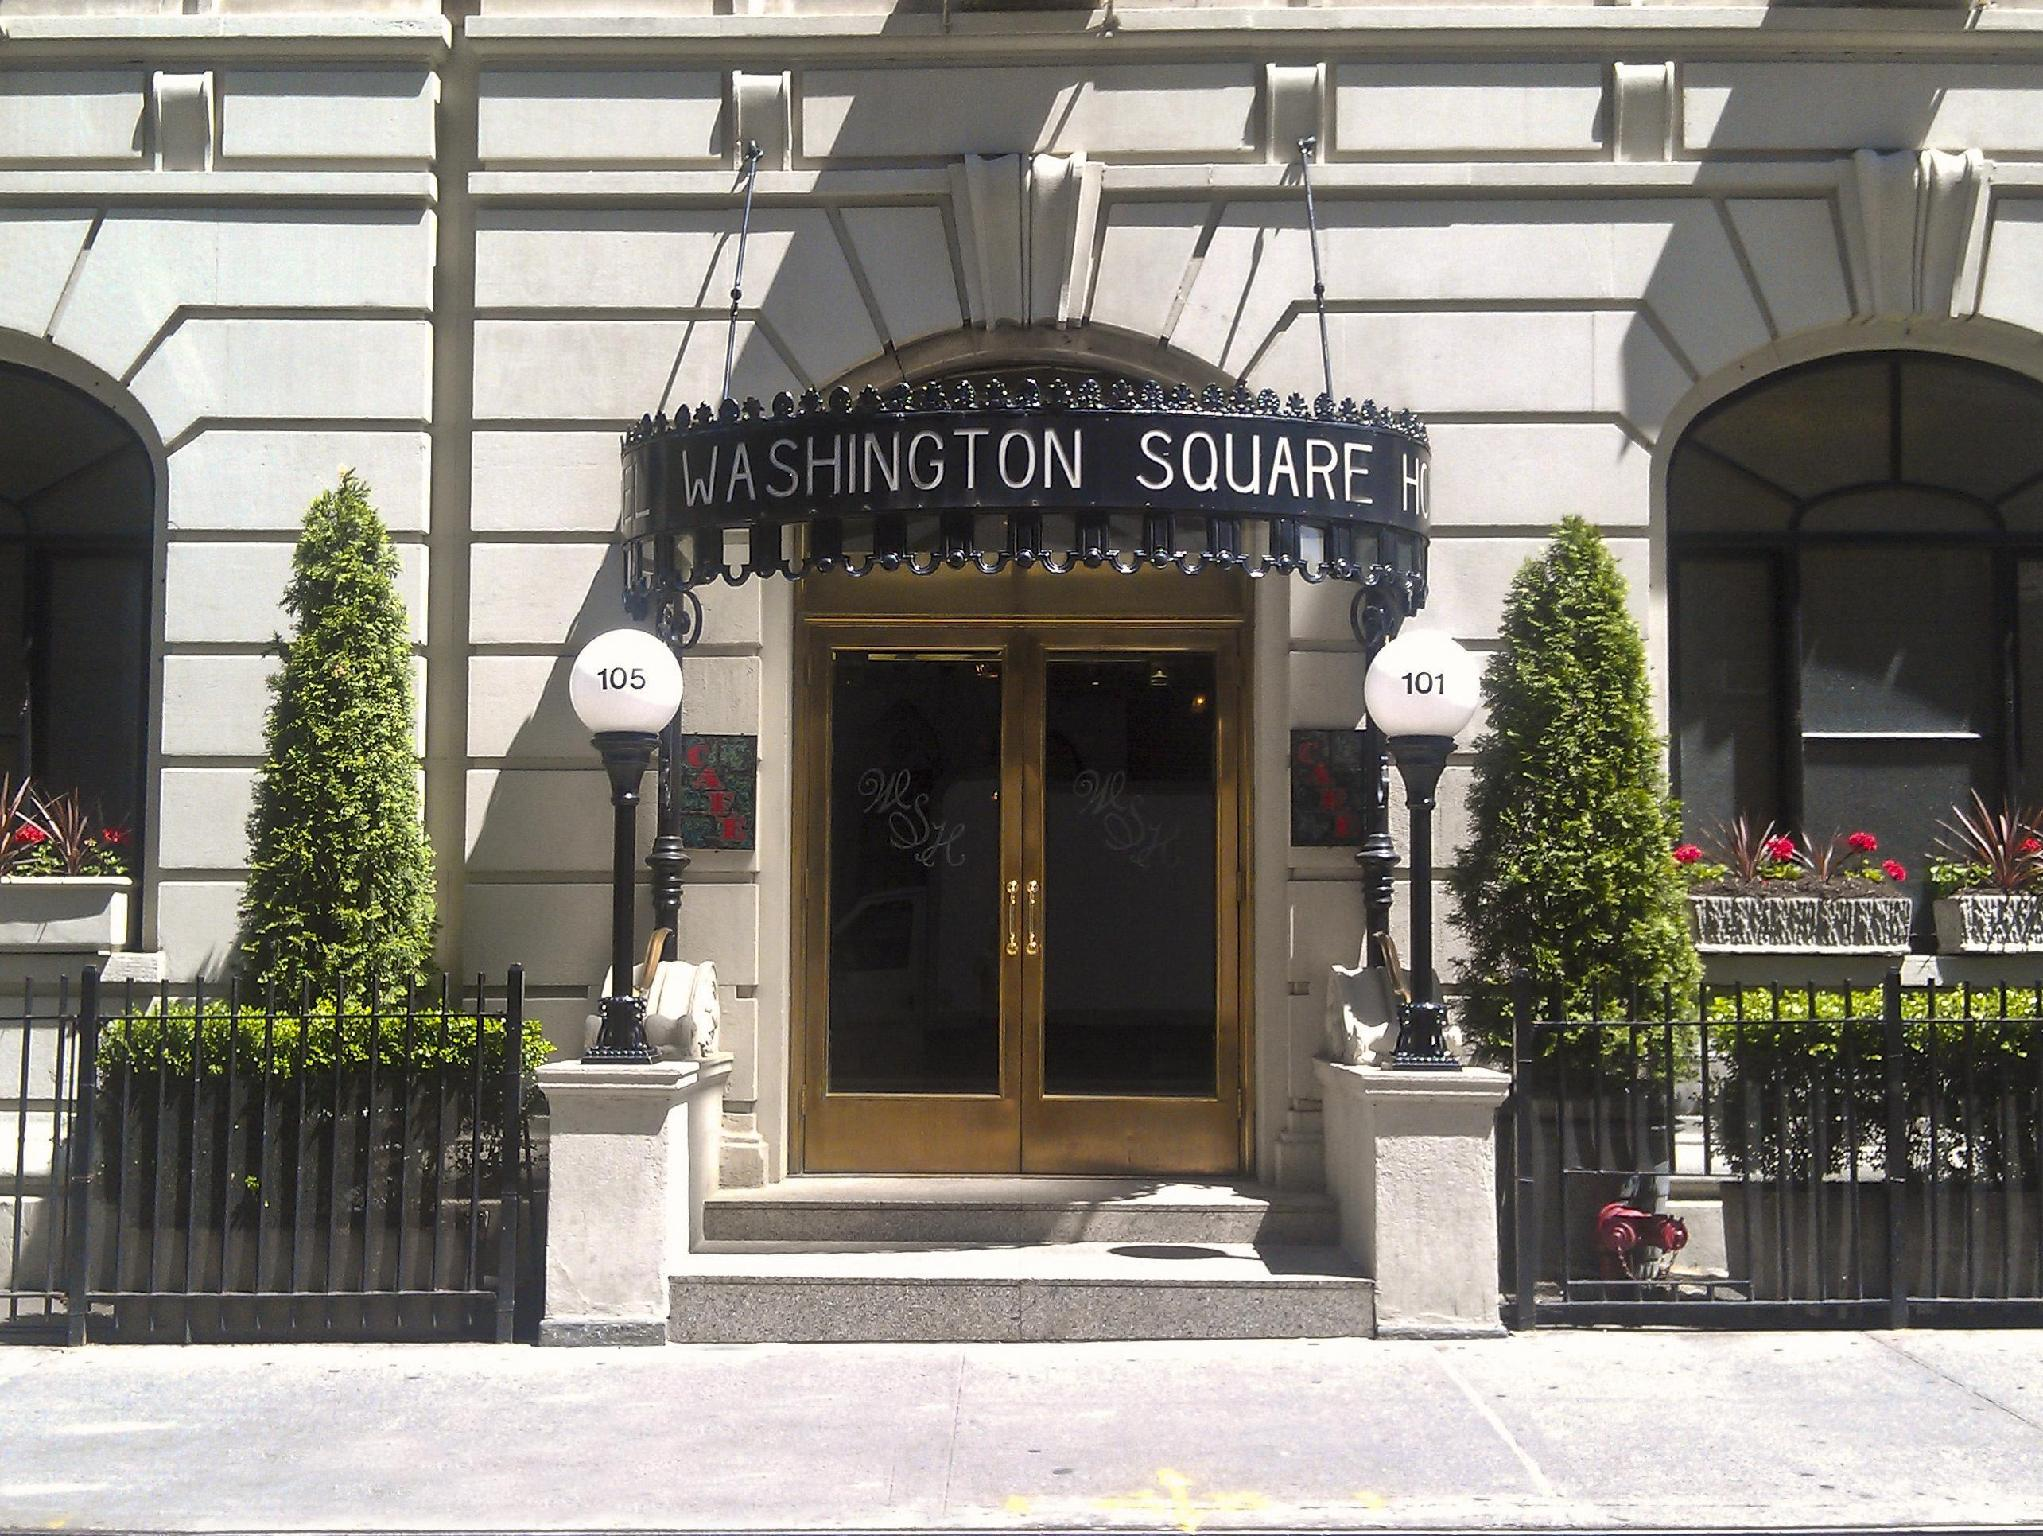 Washington Square Hotel - Hotel and accommodation in Usa in New York (NY)